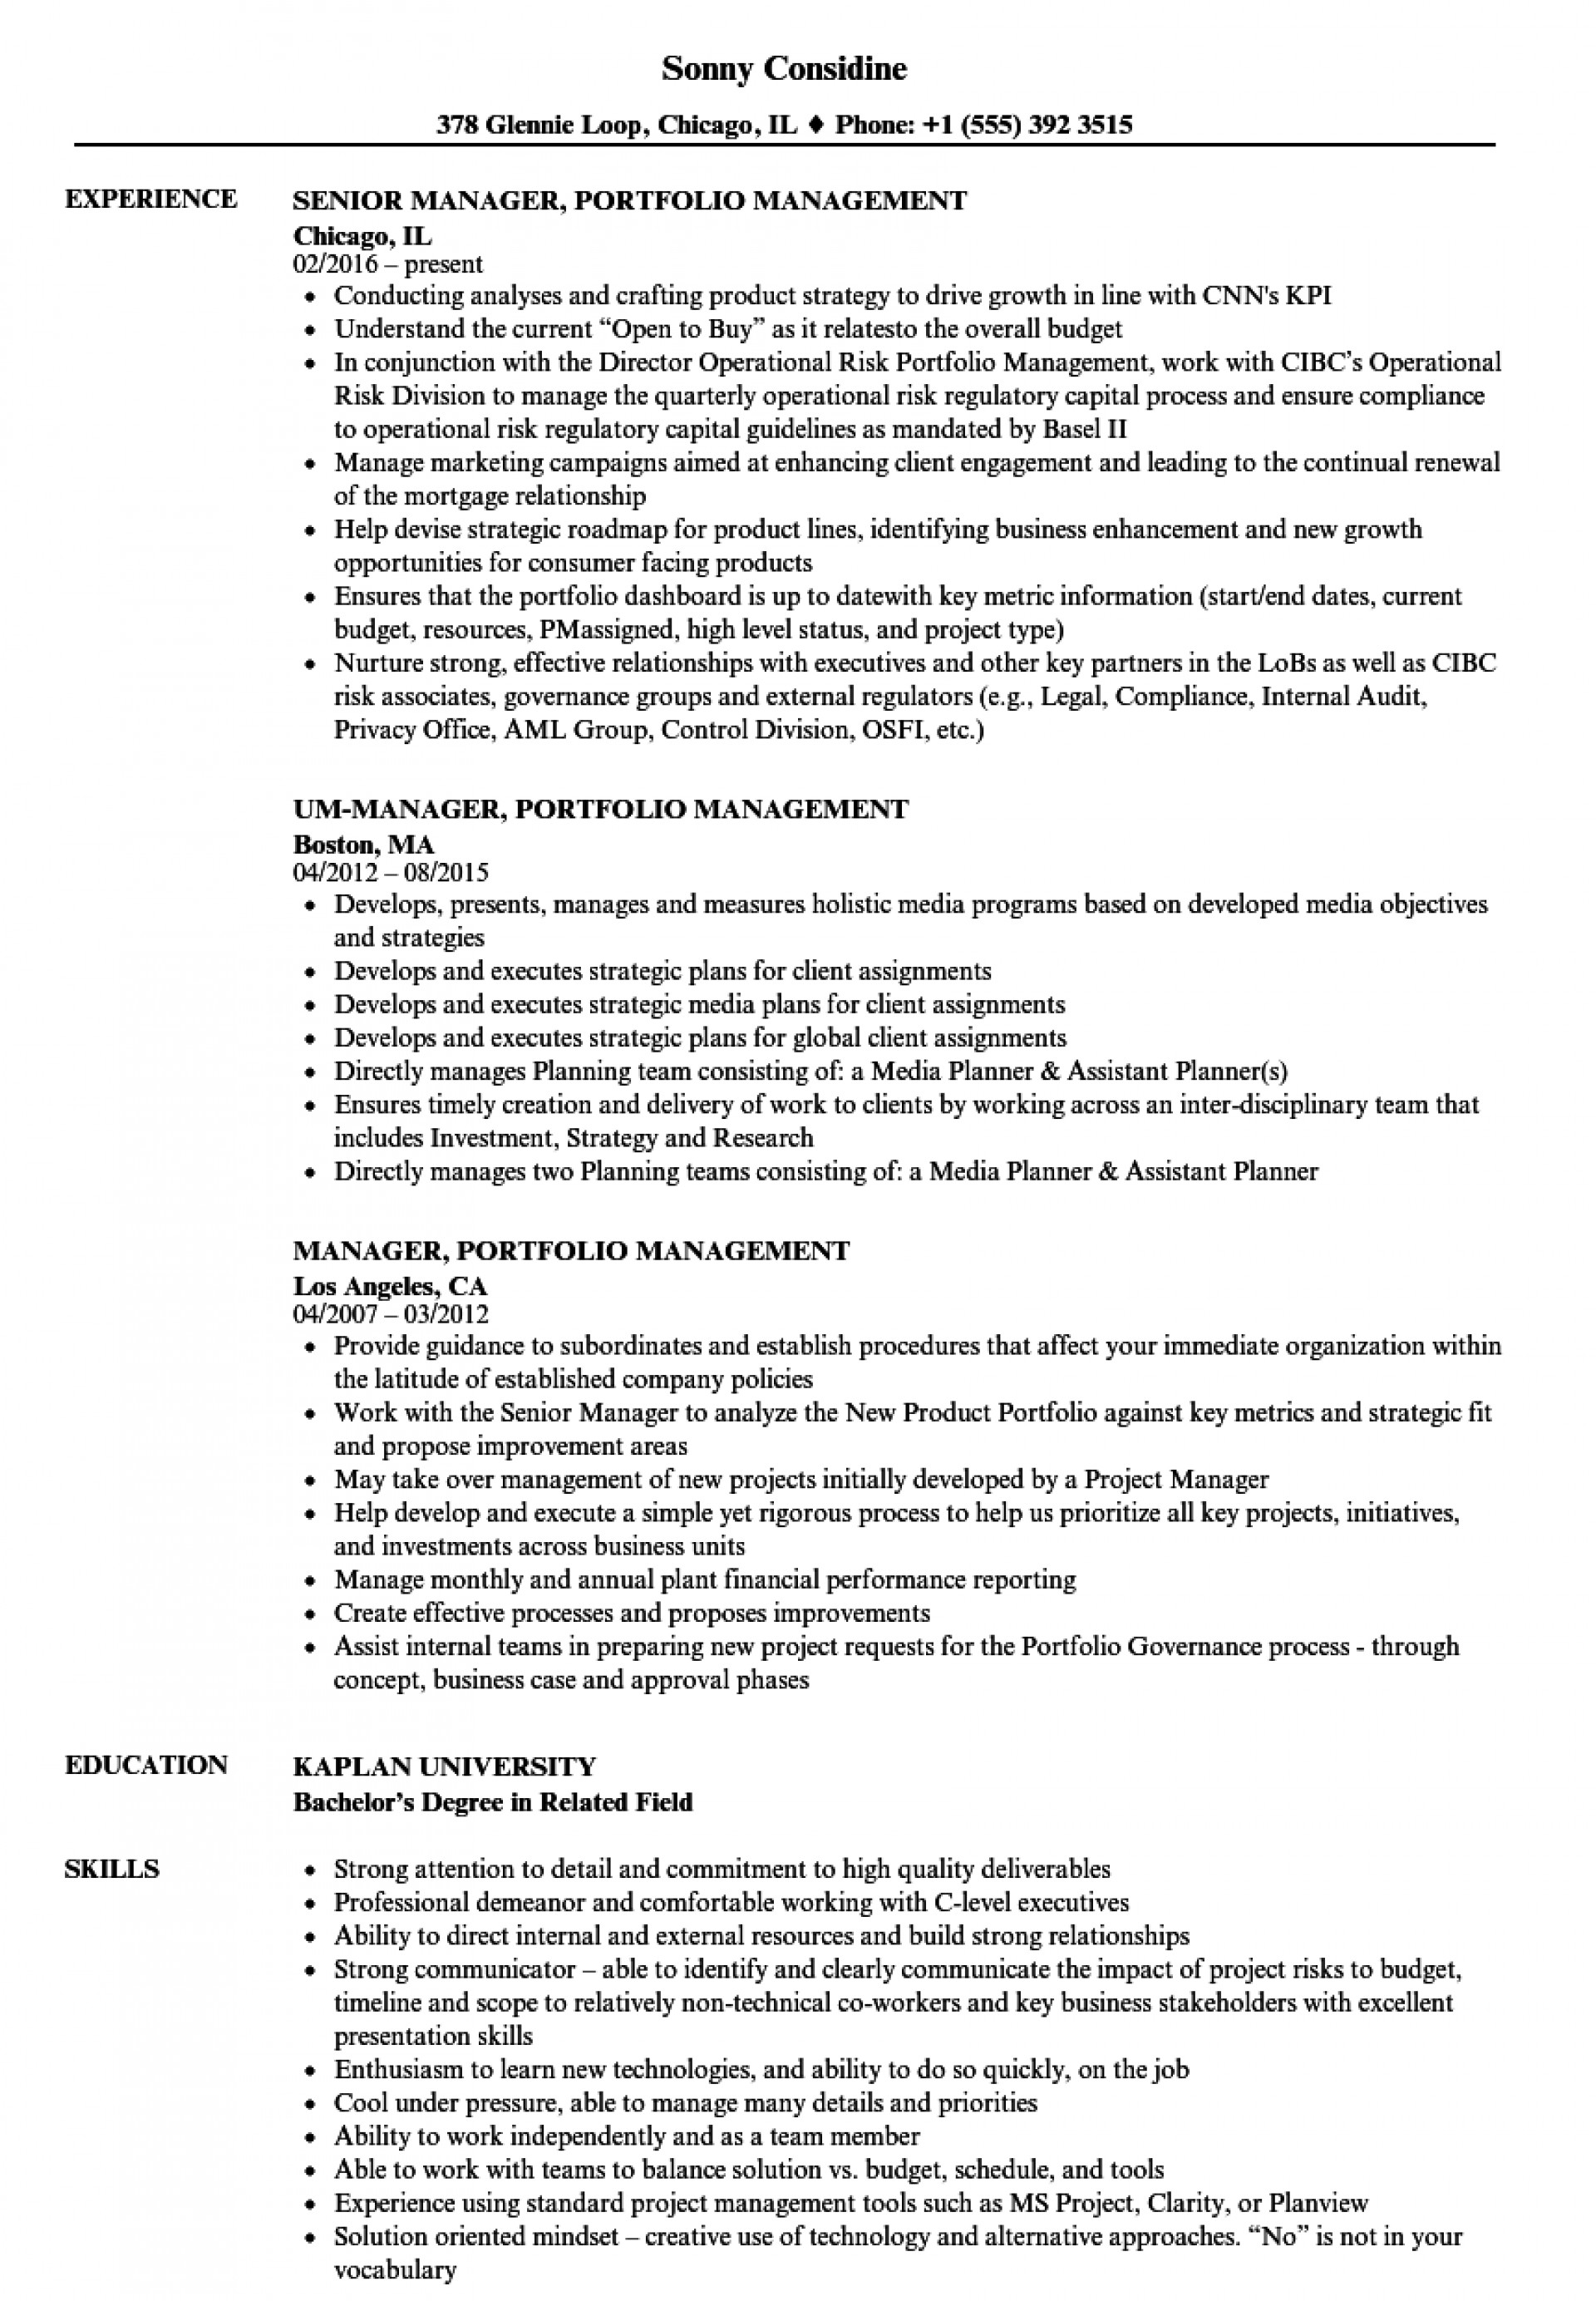 015 Why Do You Want To Teacher Essay Example Manager Portfolio Management Resume Impressive Be A Pdf Would Become 1920